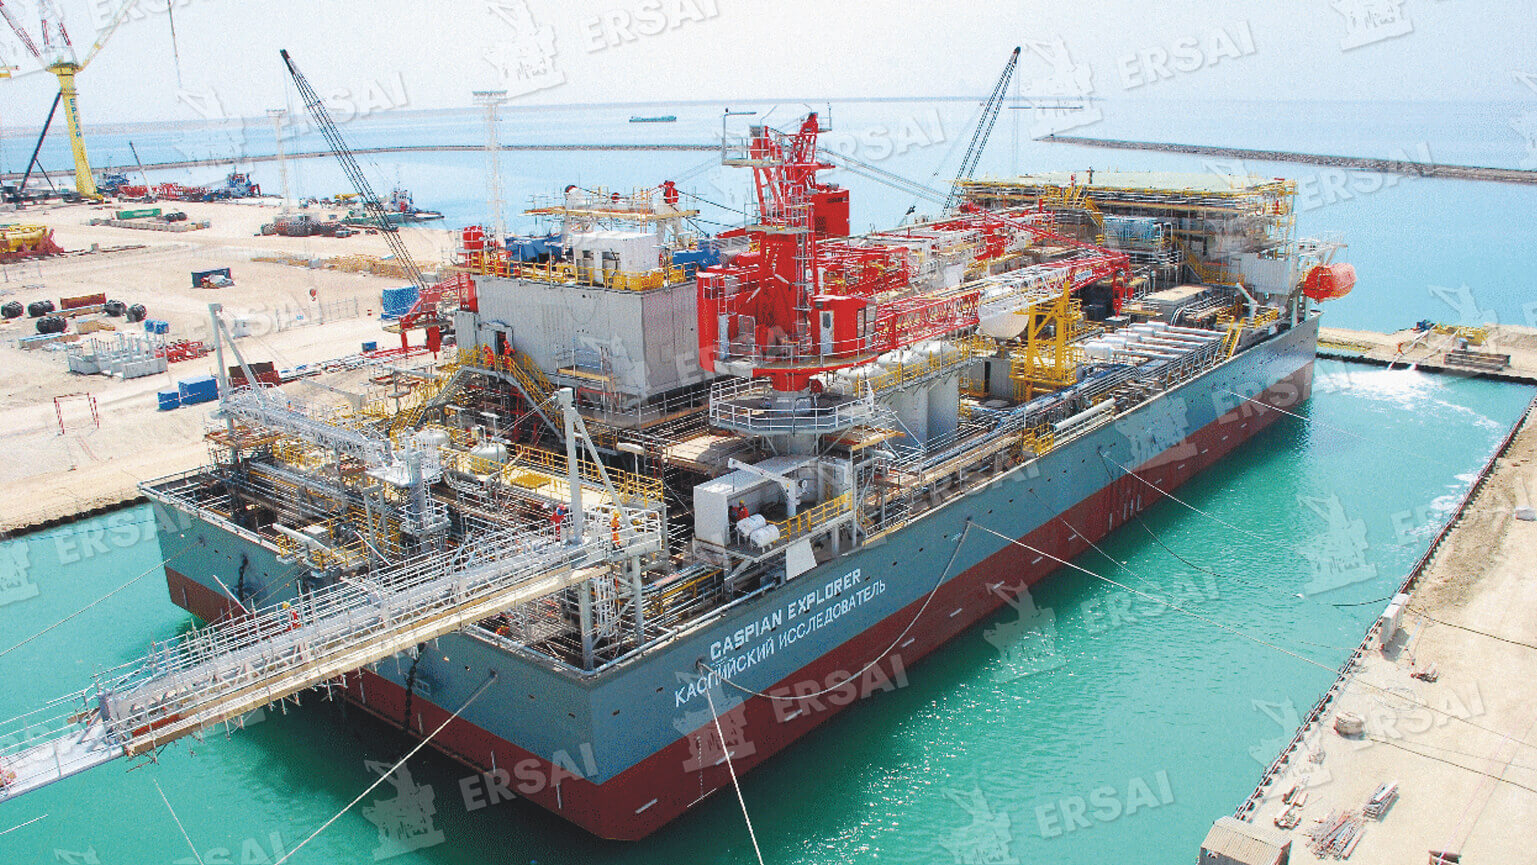 Construction of the Caspian Explorer Drilling Rig Barge